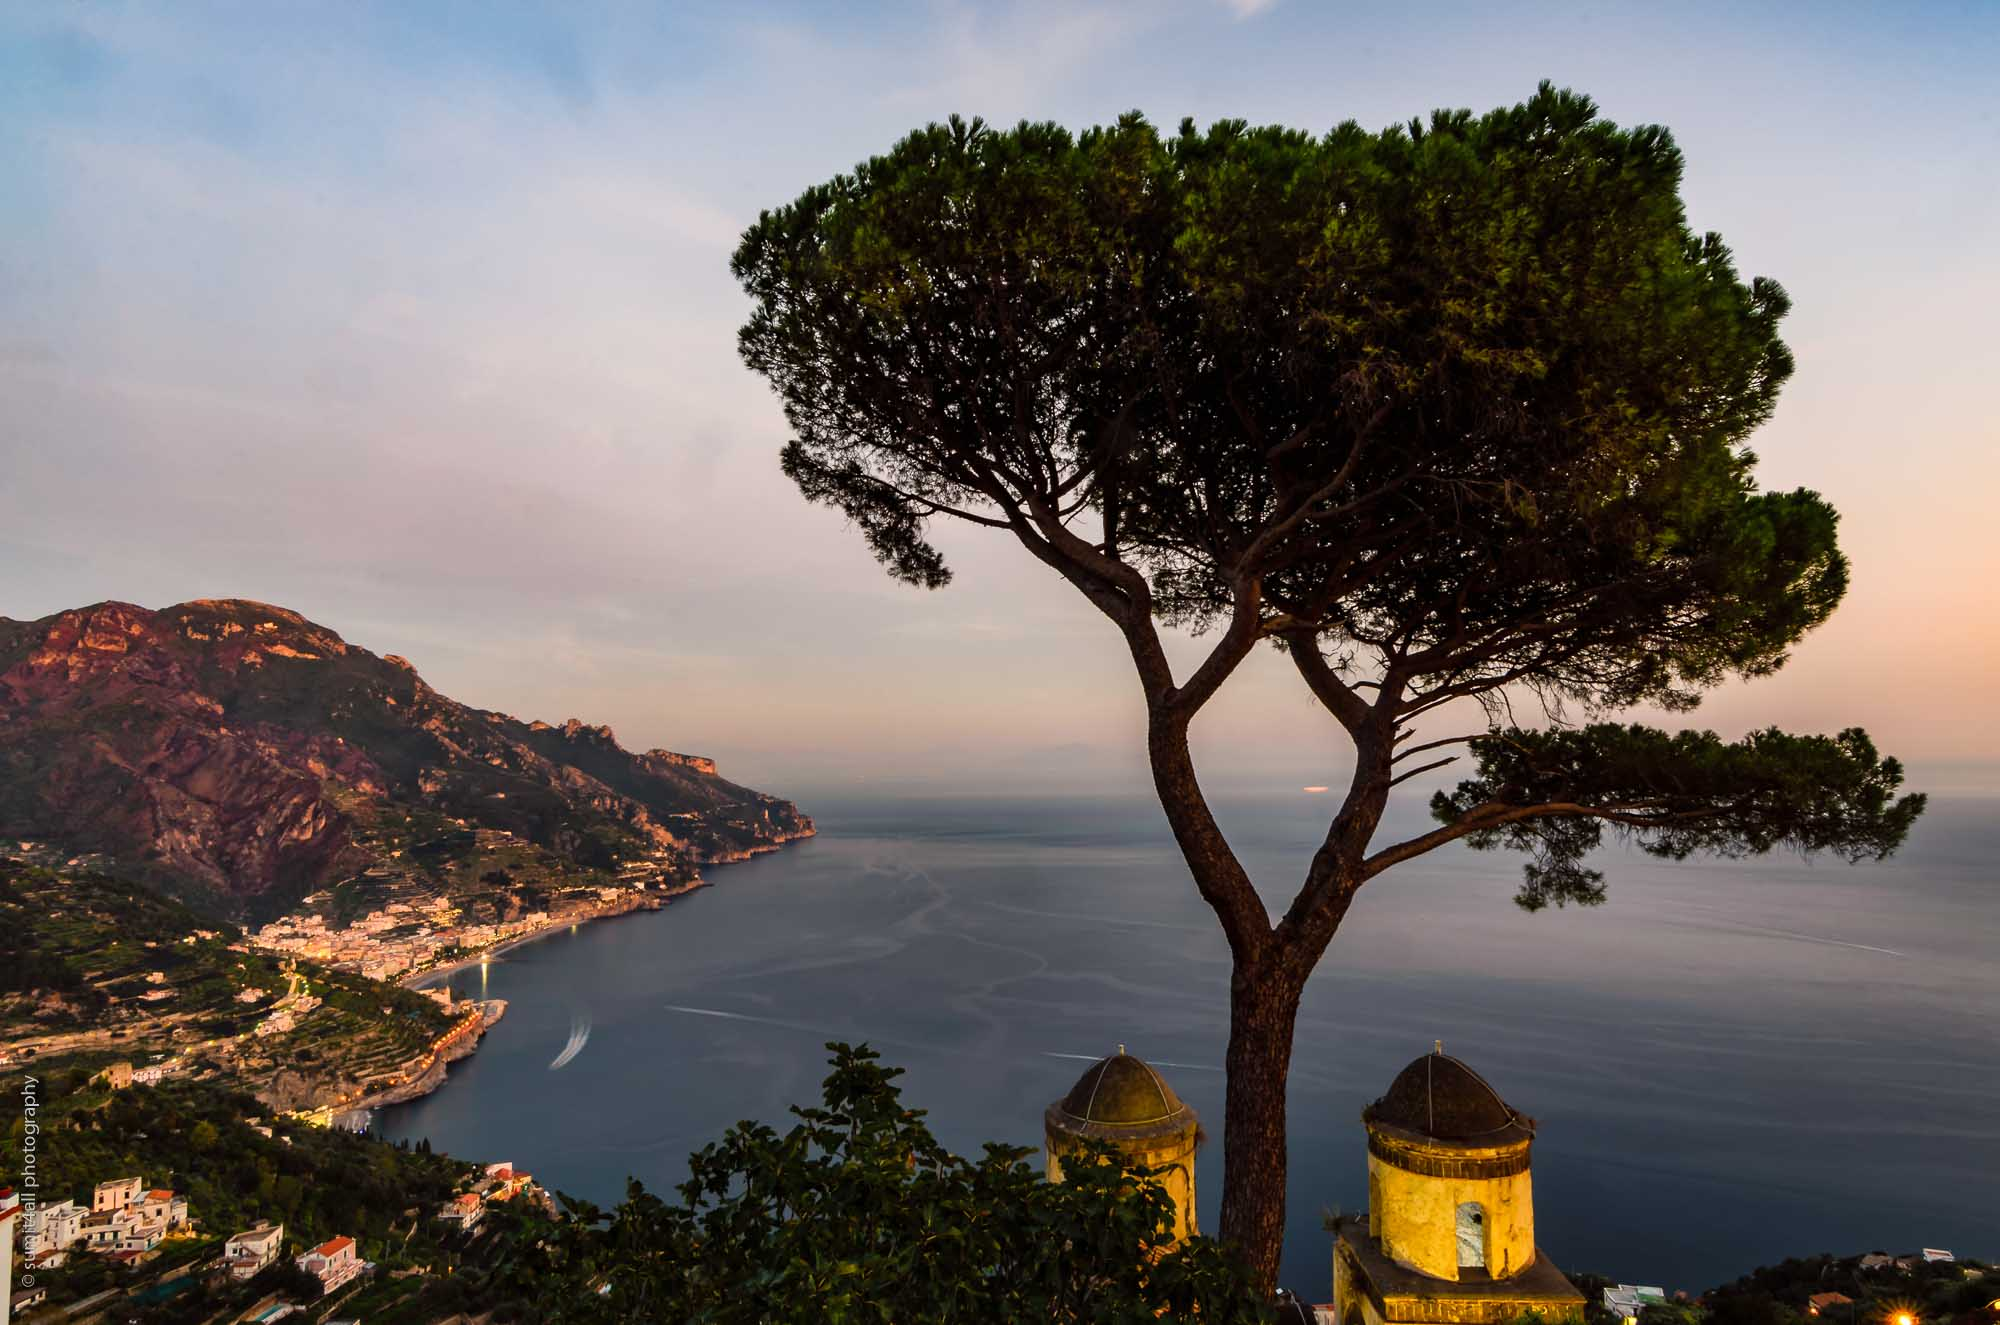 Sunset Cityscape in Ravello on the Amalfi Coast, Italy